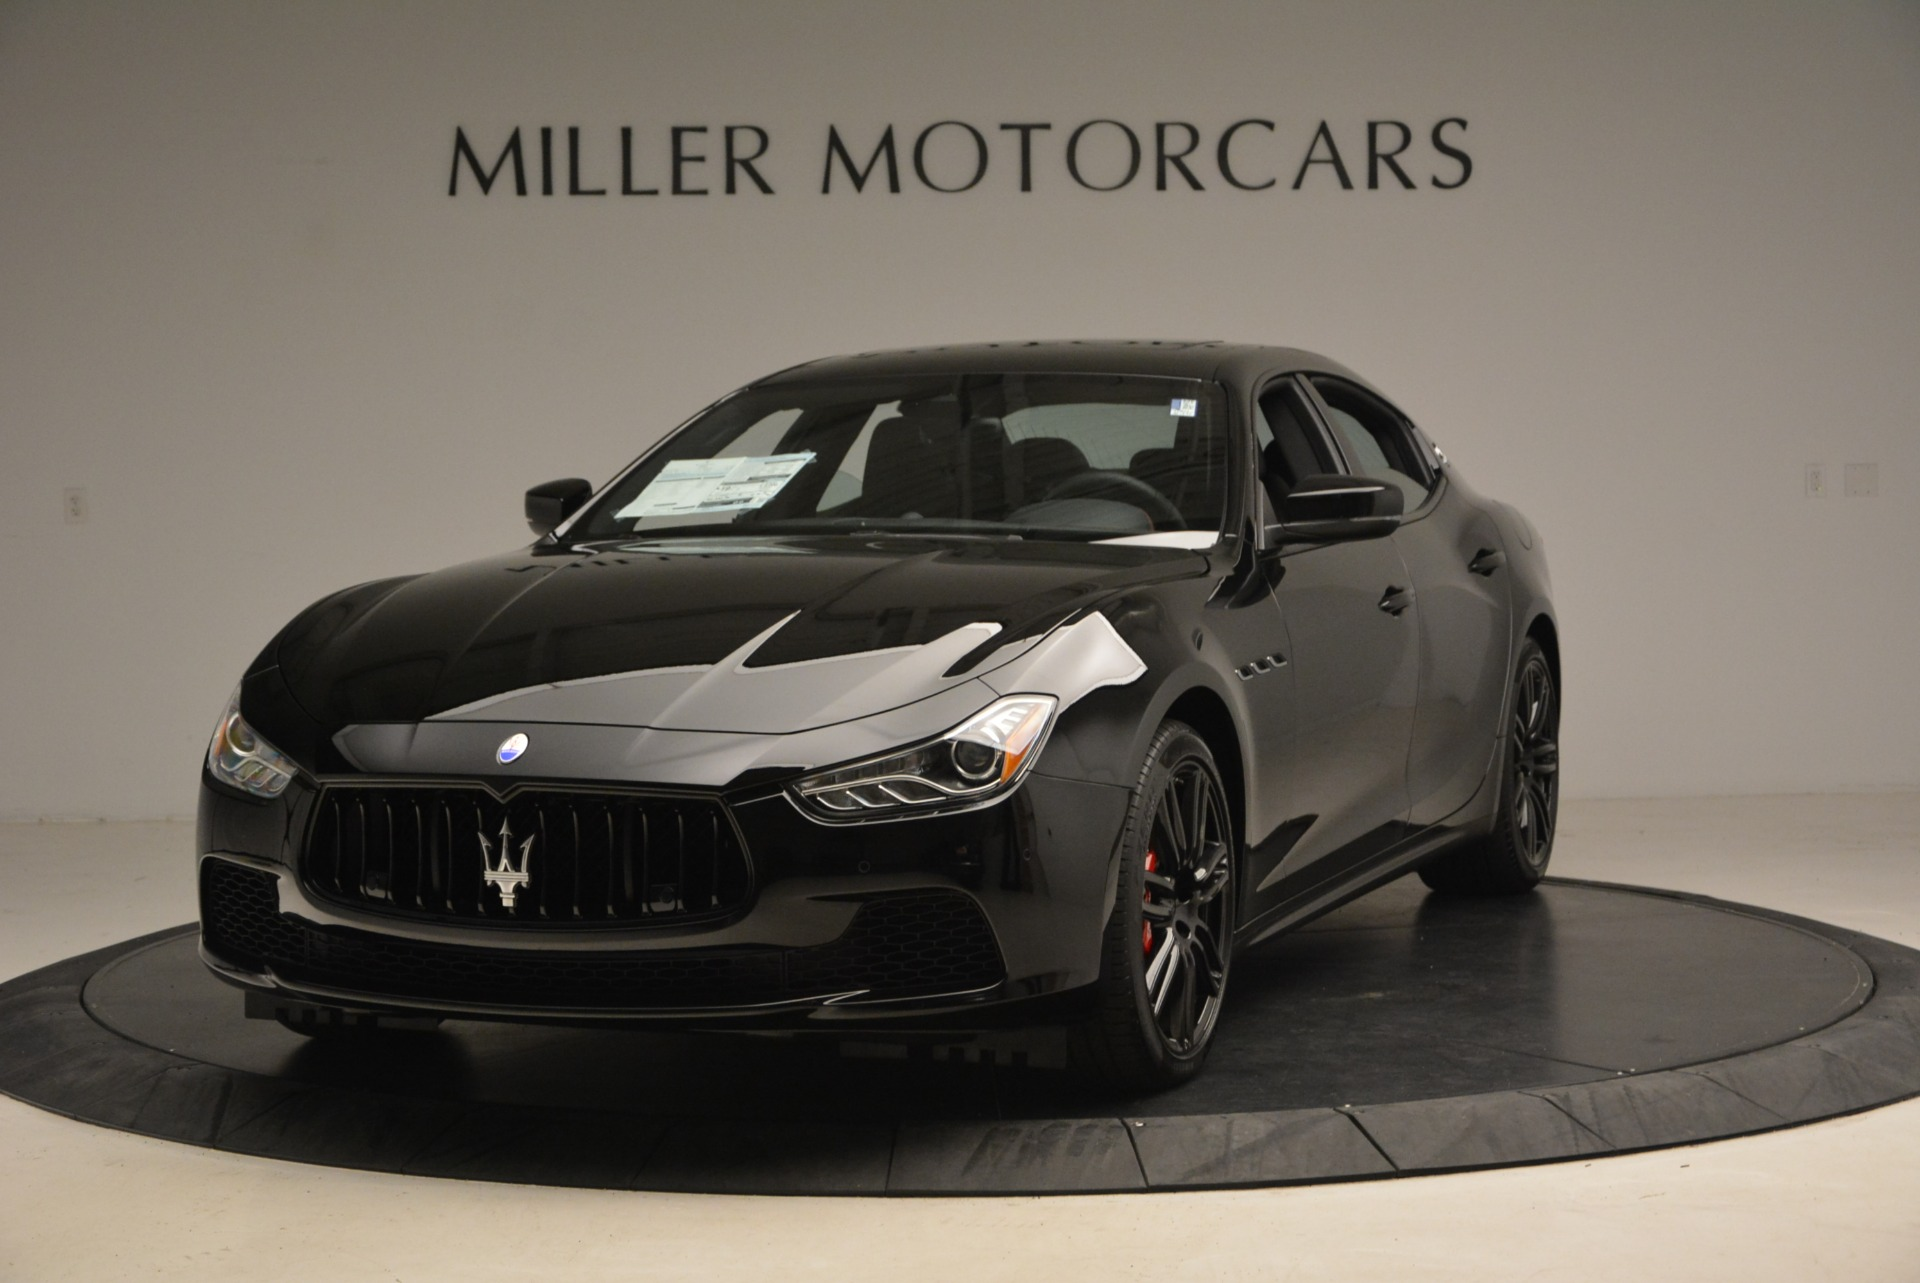 New 2017 Maserati Ghibli Nerissimo Edition S Q4 for sale Sold at Pagani of Greenwich in Greenwich CT 06830 1